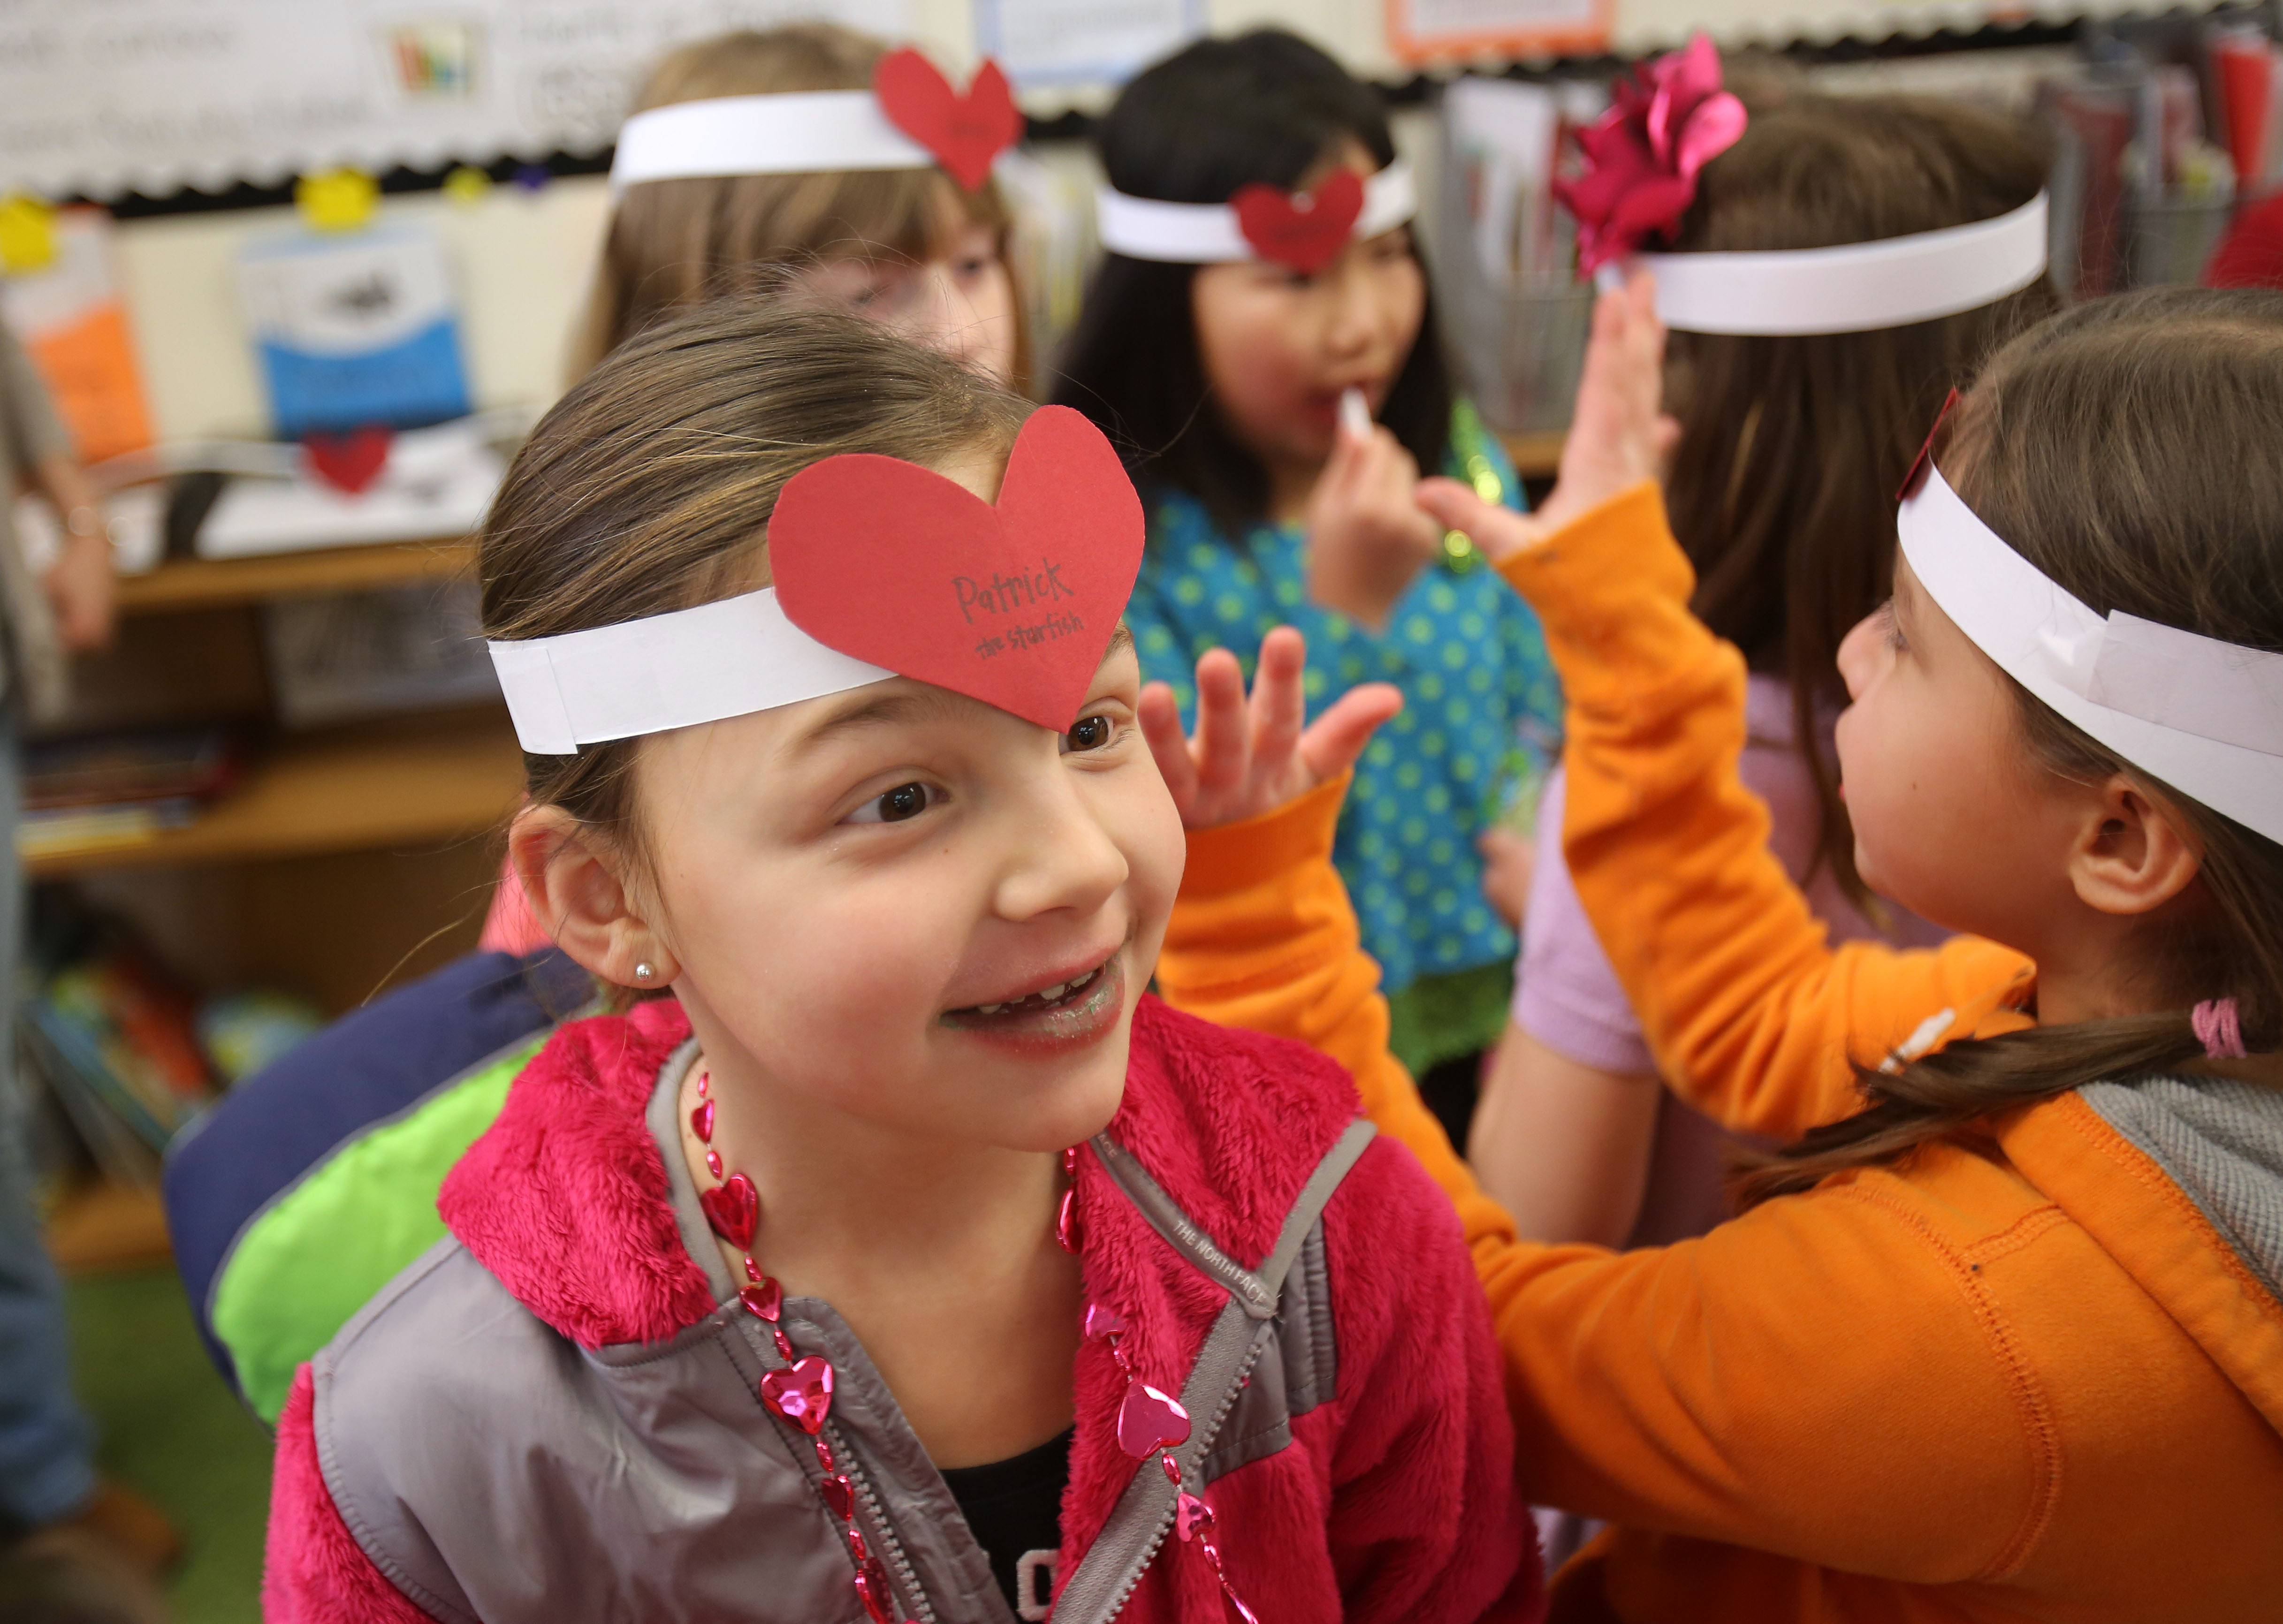 Third-grader Anna DeRosa and classmates at Butterfield Elementary School in Libertyville play a version of the game Headbandz. They put hearts on their foreheads and tried to guess who they are during a Valentine's Day party Thursday.